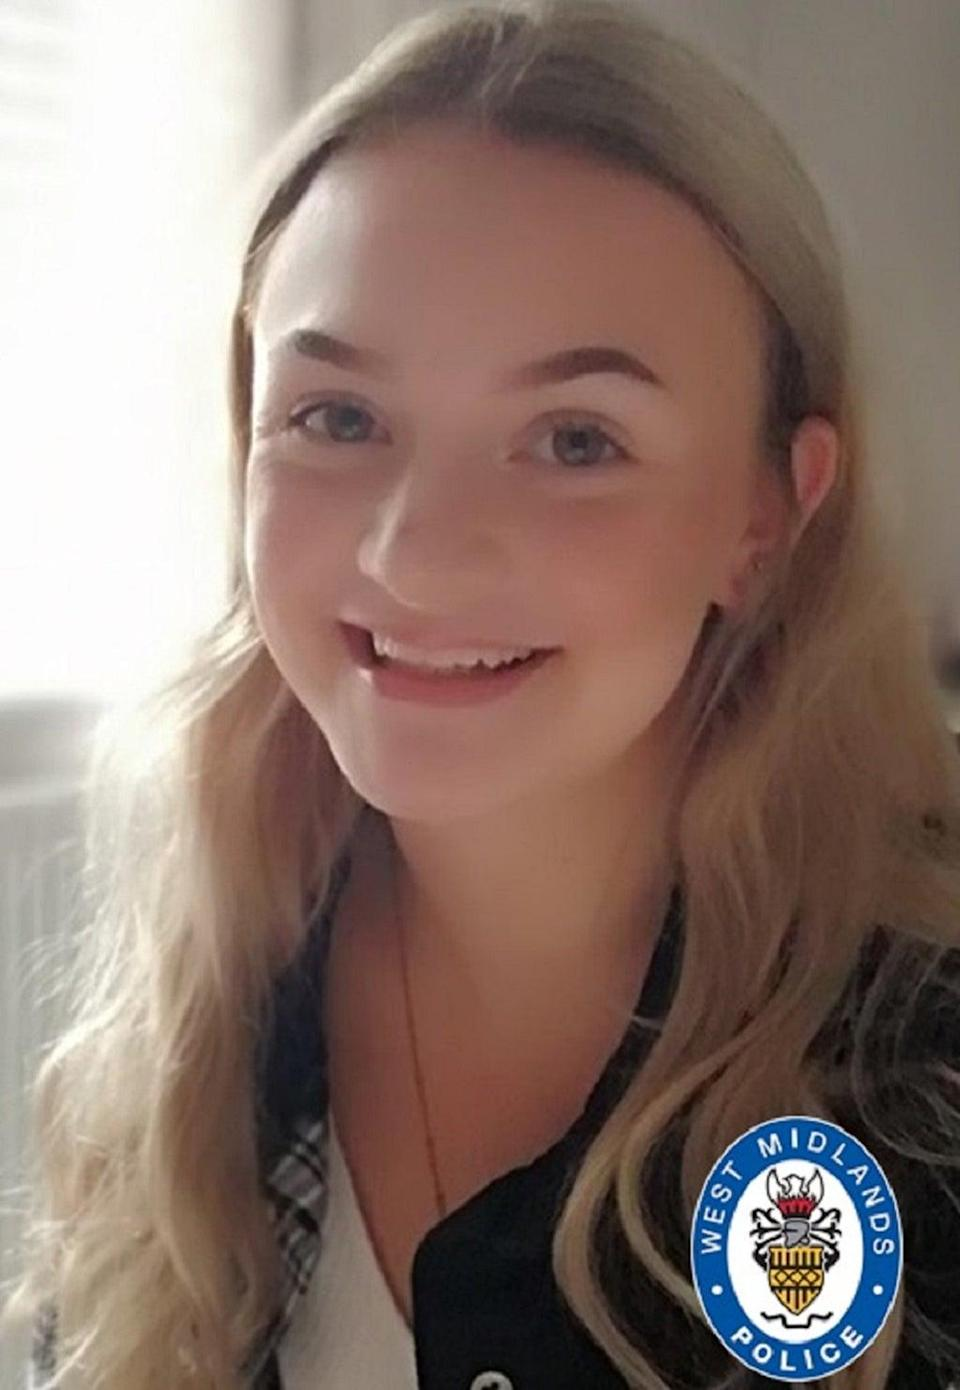 Isabelle Floyd, 16, who died in the crash (PA Media)